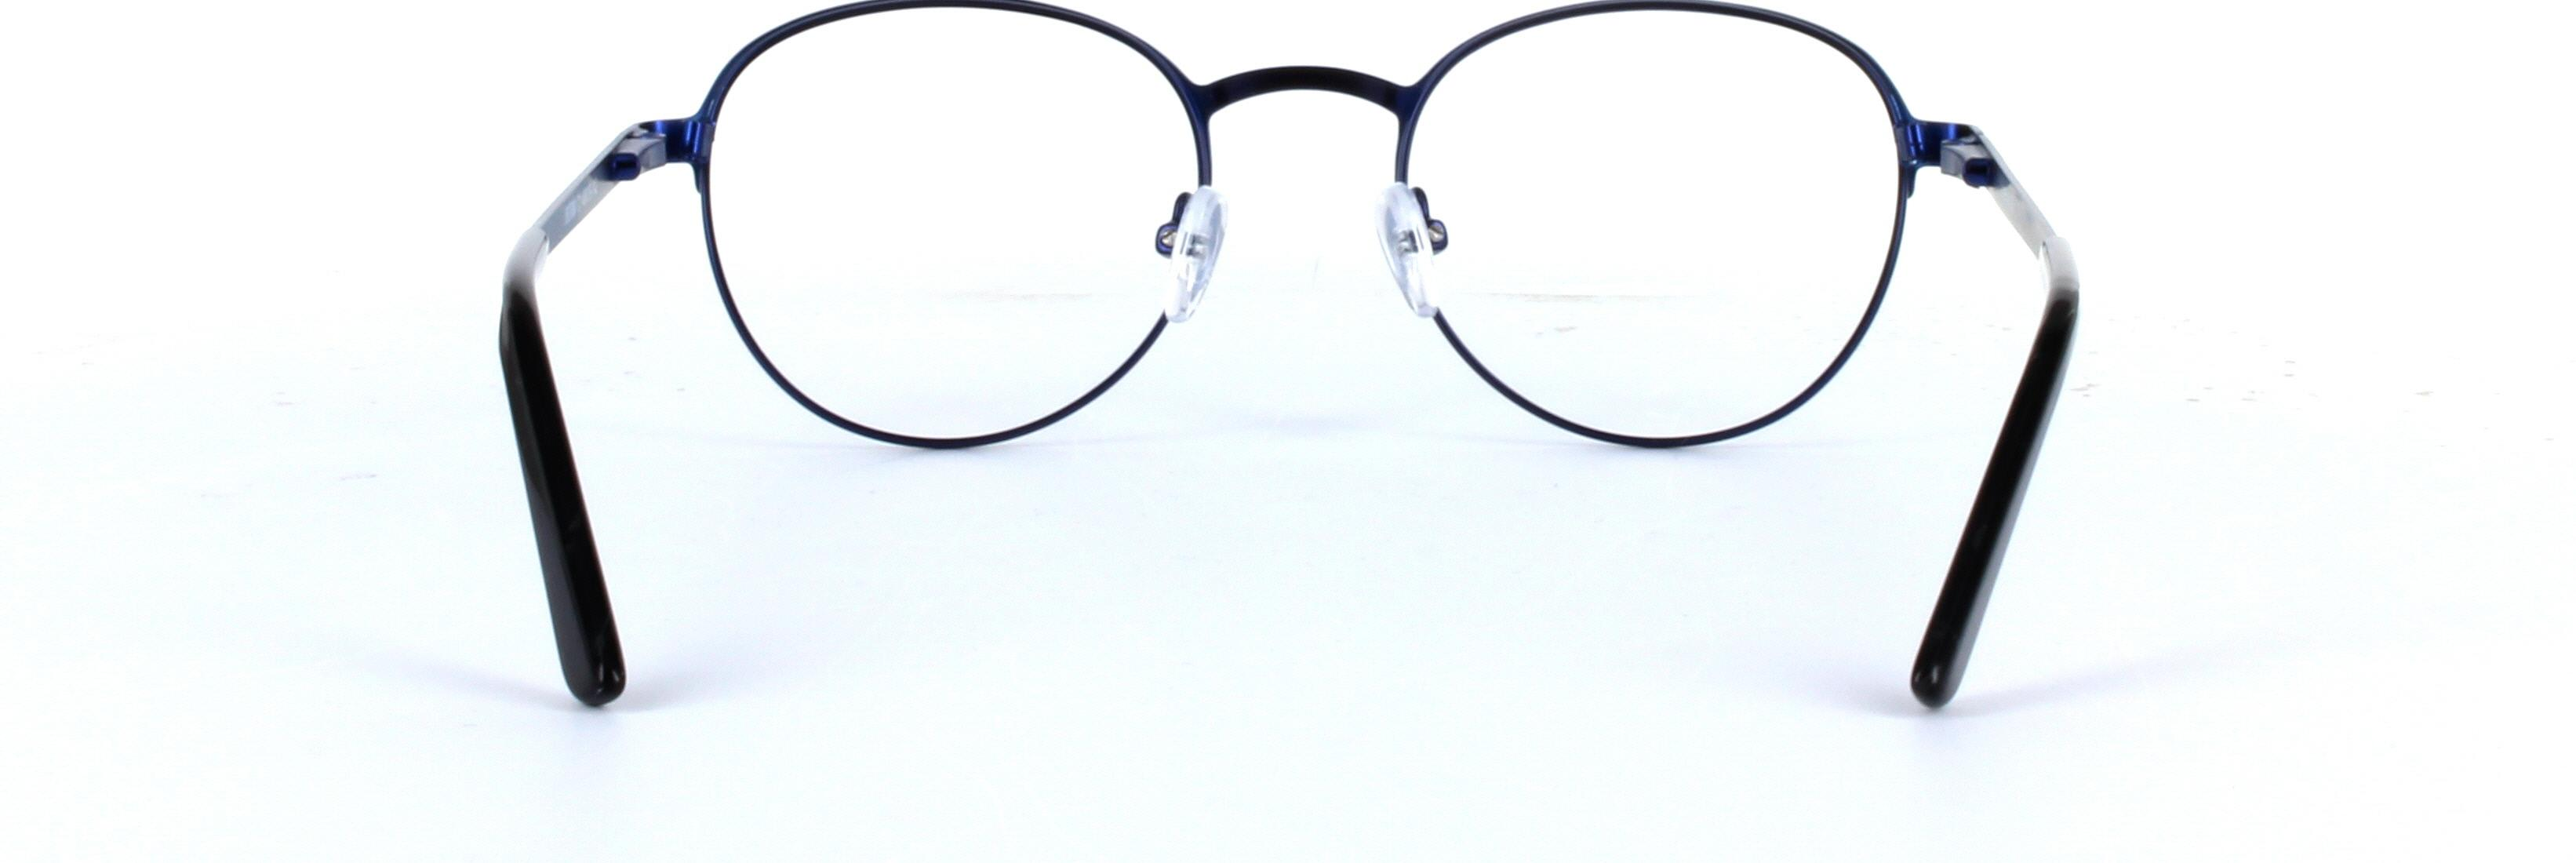 Round shaped glasses frame  - Landen - image 3